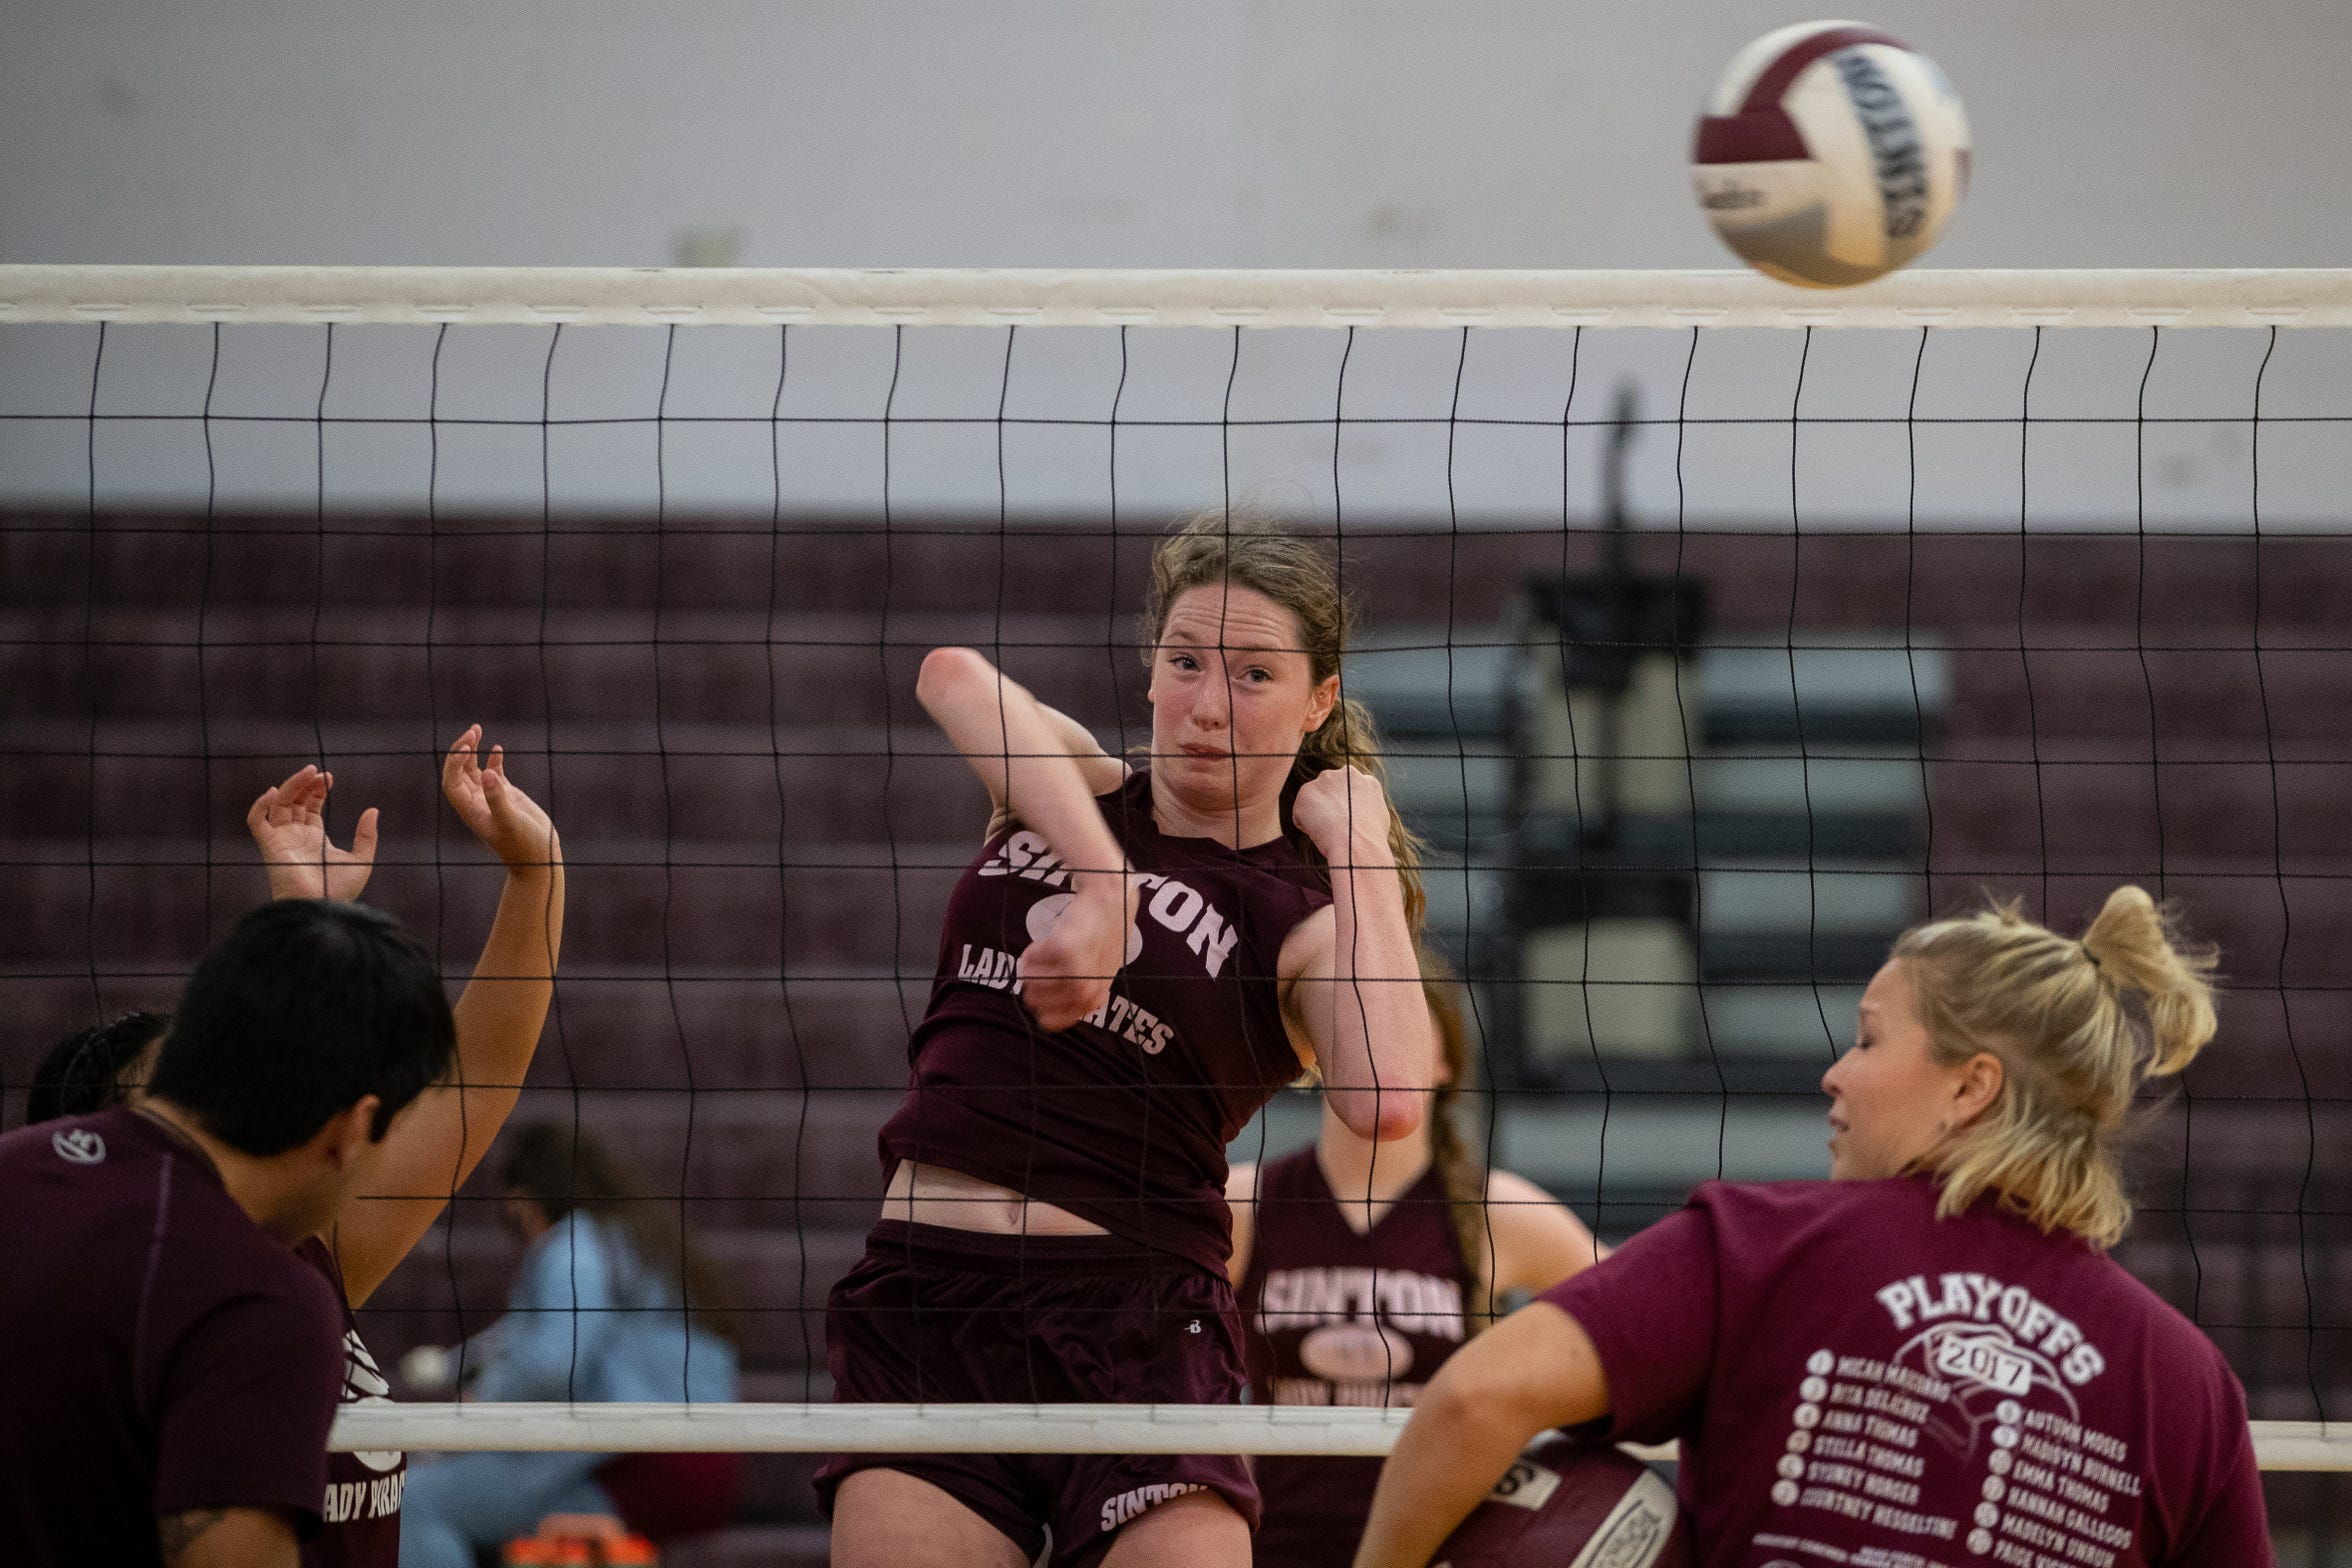 Sinton's Stella Thomas spikes the ball during practice at Sinton High school on Wednesday, Sept. 5, 2018. Stella Thomas plays with her two sisters Anna and Emma Thomas and cousin Lela Thomas.